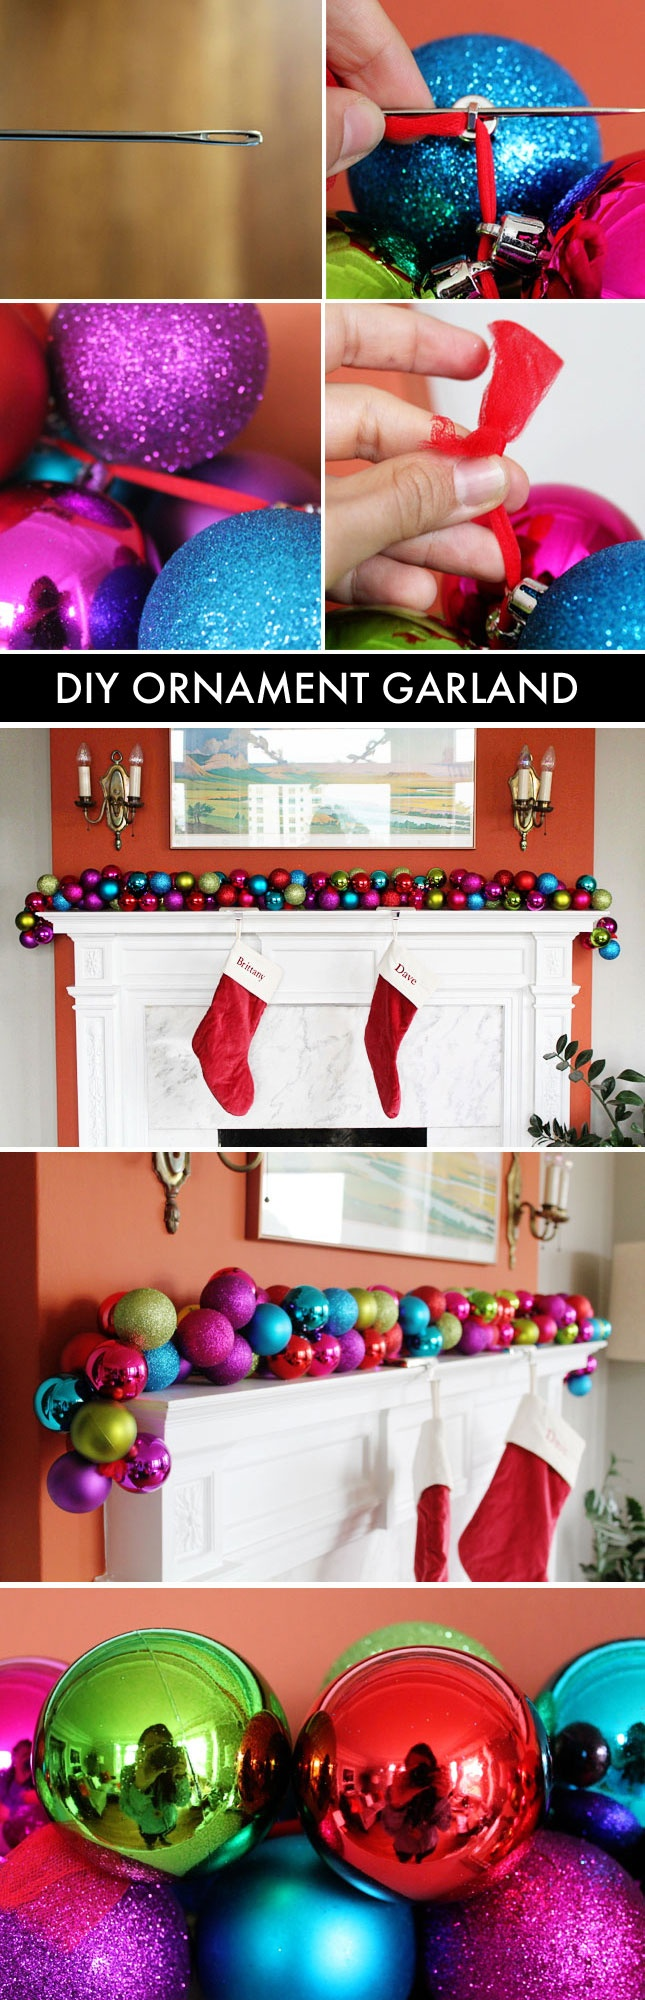 colorful-ornament-garland